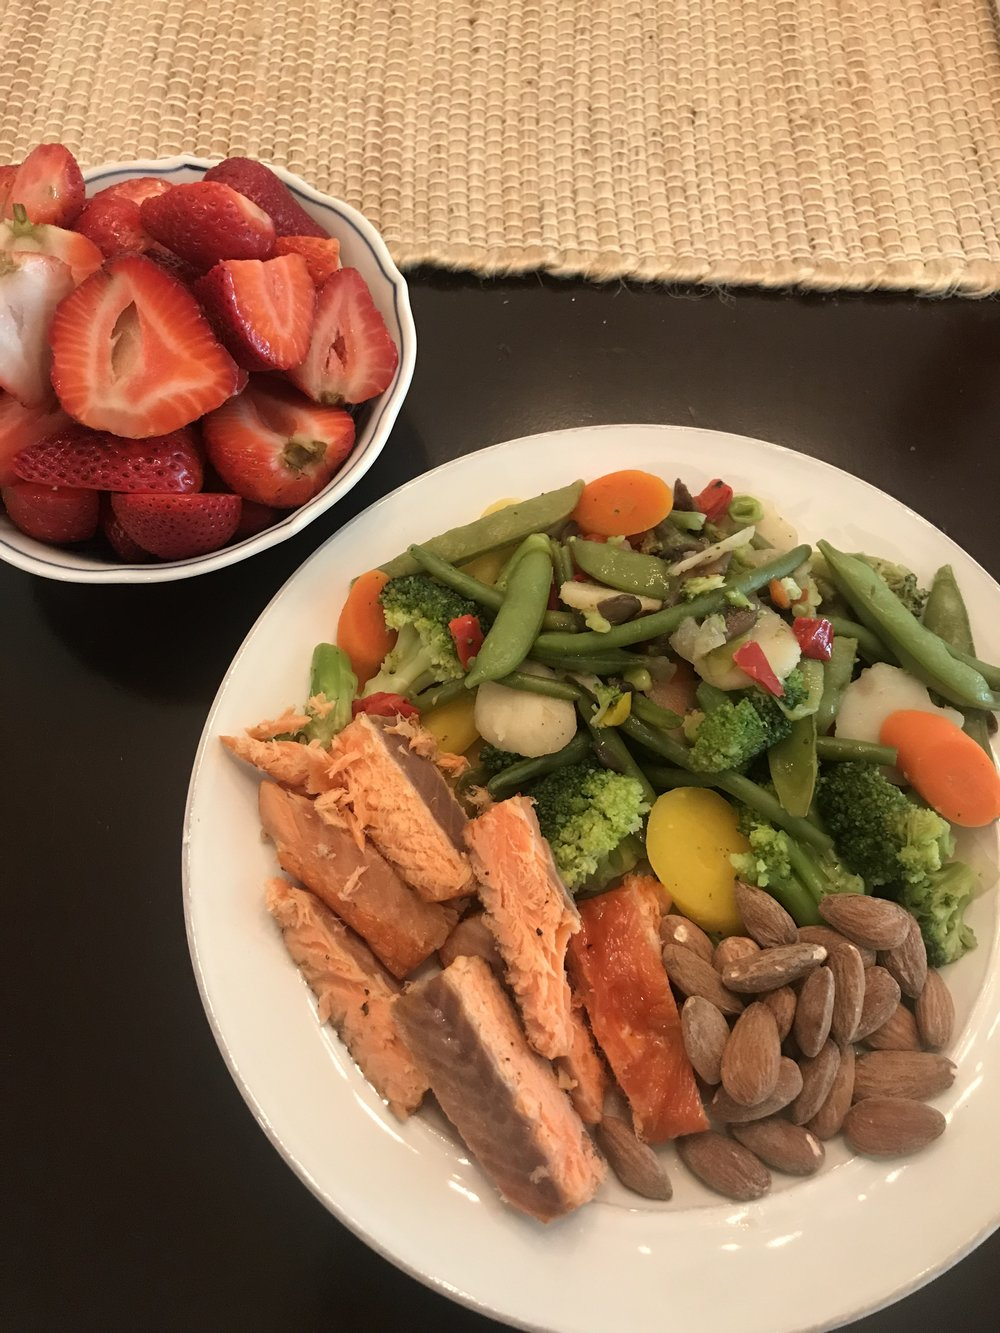 This is super simple.  4 ounces Smoked salmon.  40g almonds. 2 cups veggies. 3 cups strawberries. Little to no brain power needed. Salmon was bought smoked. Veggies were cooked in an oven in bulk. The entire meal is less than 600 calories and keeps my full for 4-5 hours minimum. This is following the RP simplified diet I posted earlier this week. When you eat like this 90% of the time, a hamburger and french fries with a cold beer is earth shaking. Work harder to find your balance. There is no excuse other than not trying hard enough.